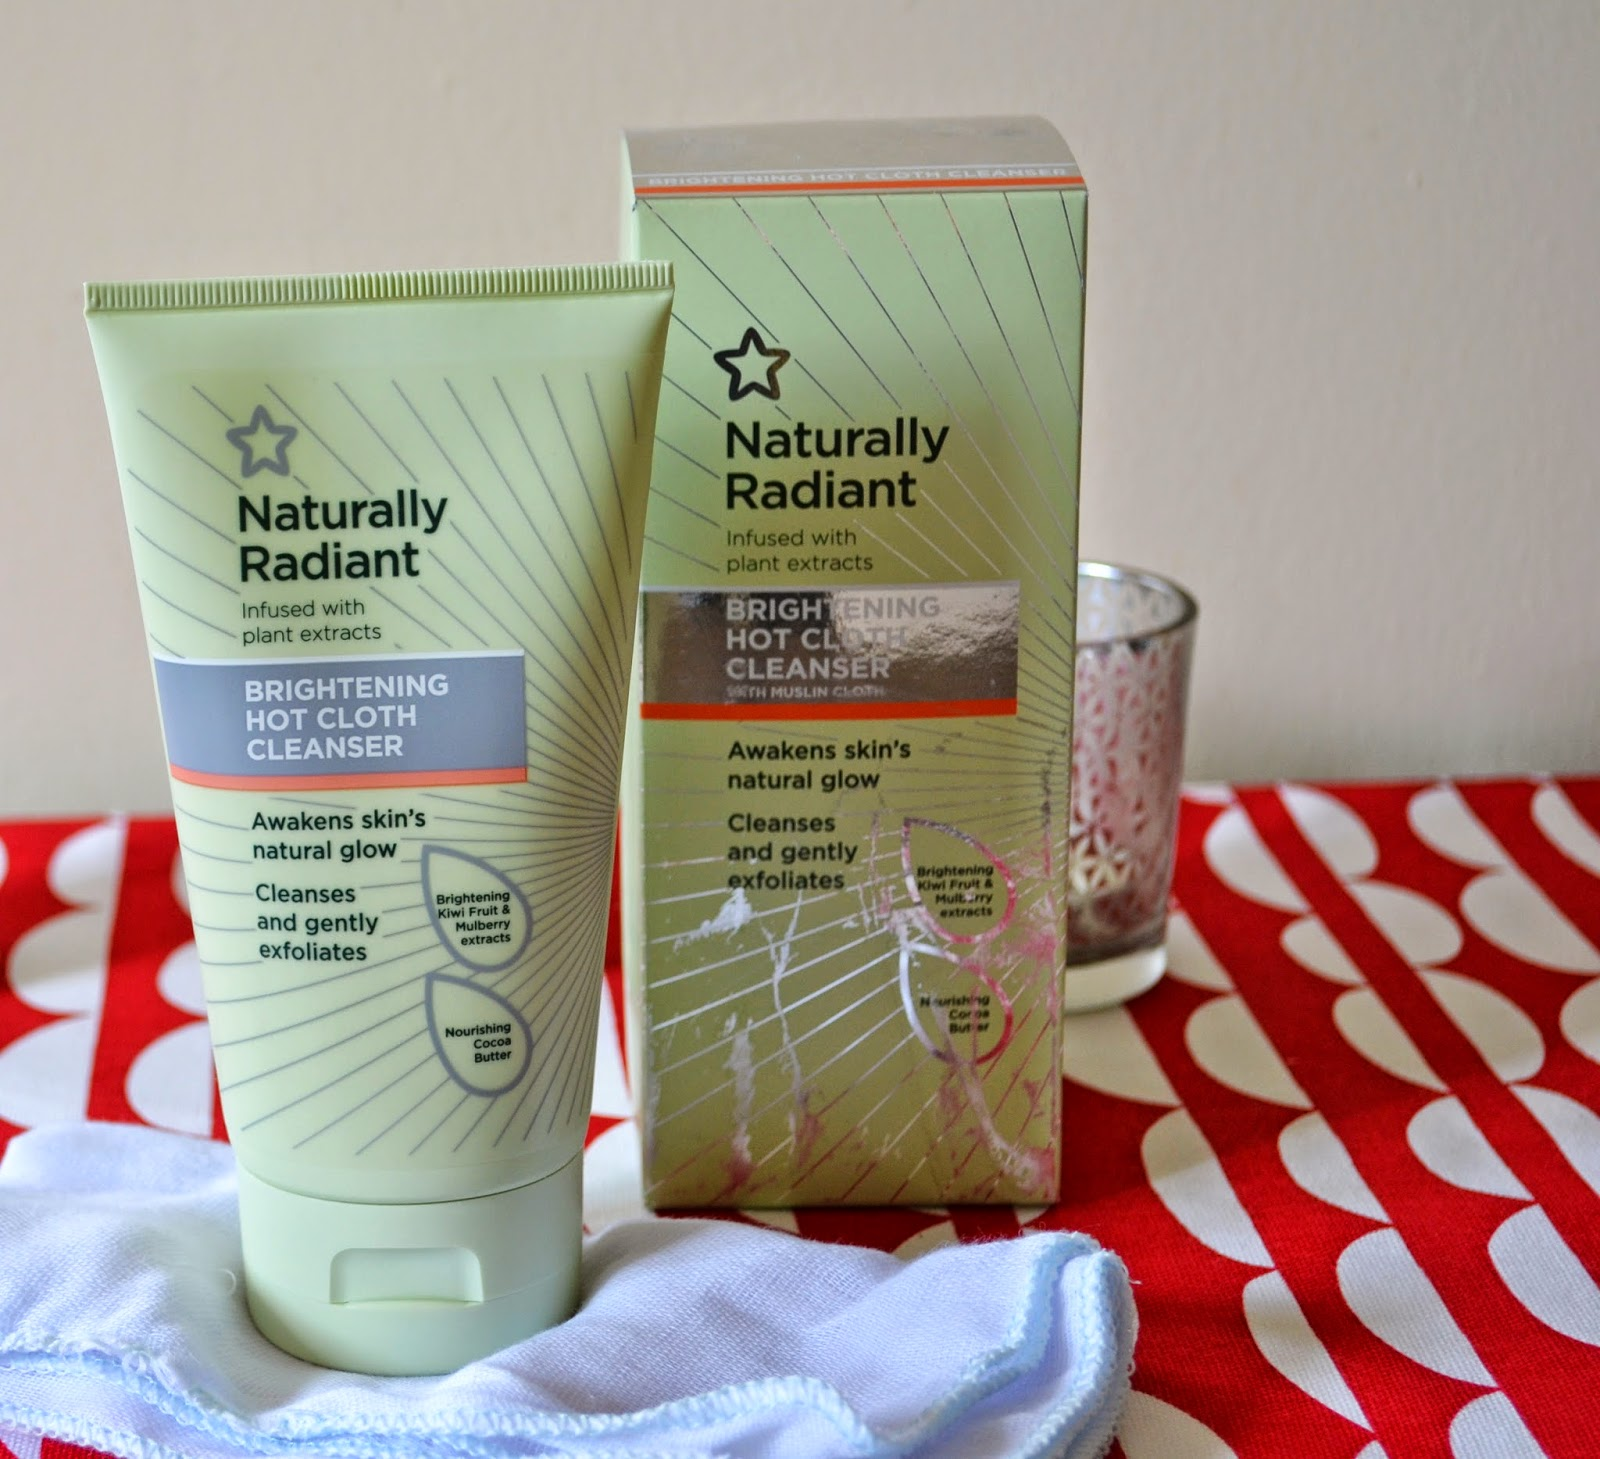 Superdrug Naturally Radiant Brightening Hot Cloth Cleanser - Aspiring Londoner